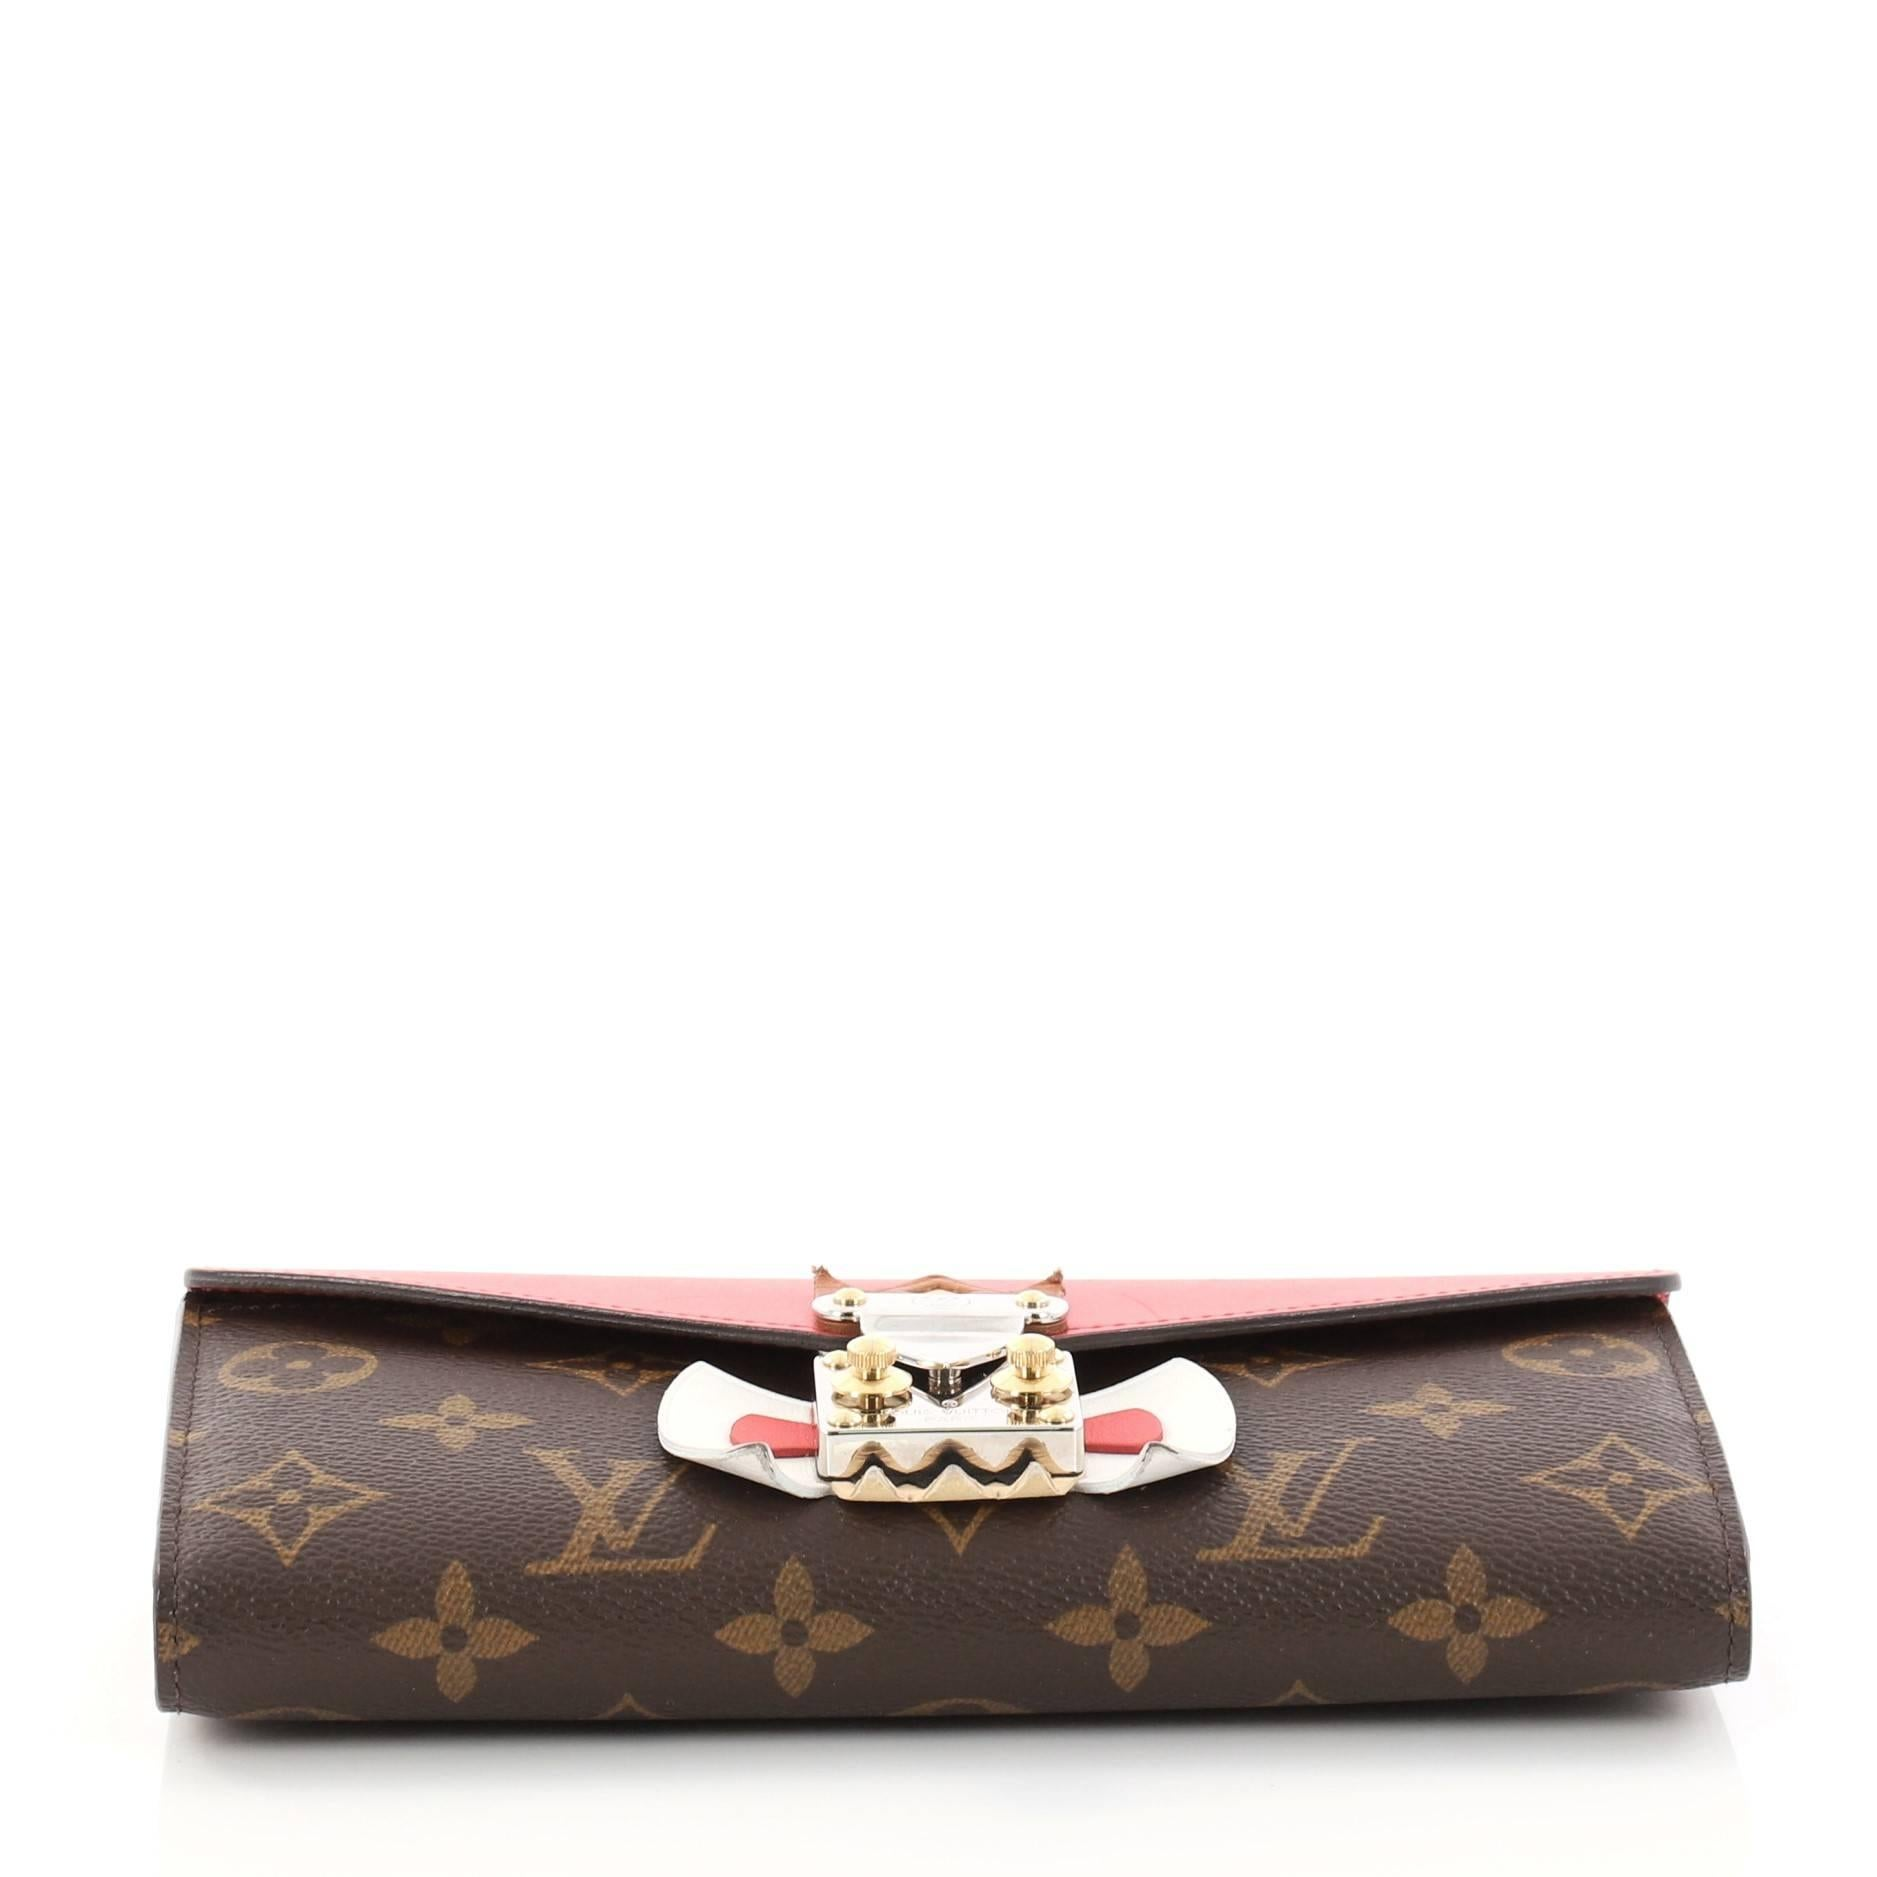 0be324fa82a Louis Vuitton Monogram Canvas and Leather Tribal Mask Sarah Wallet at  1stdibs